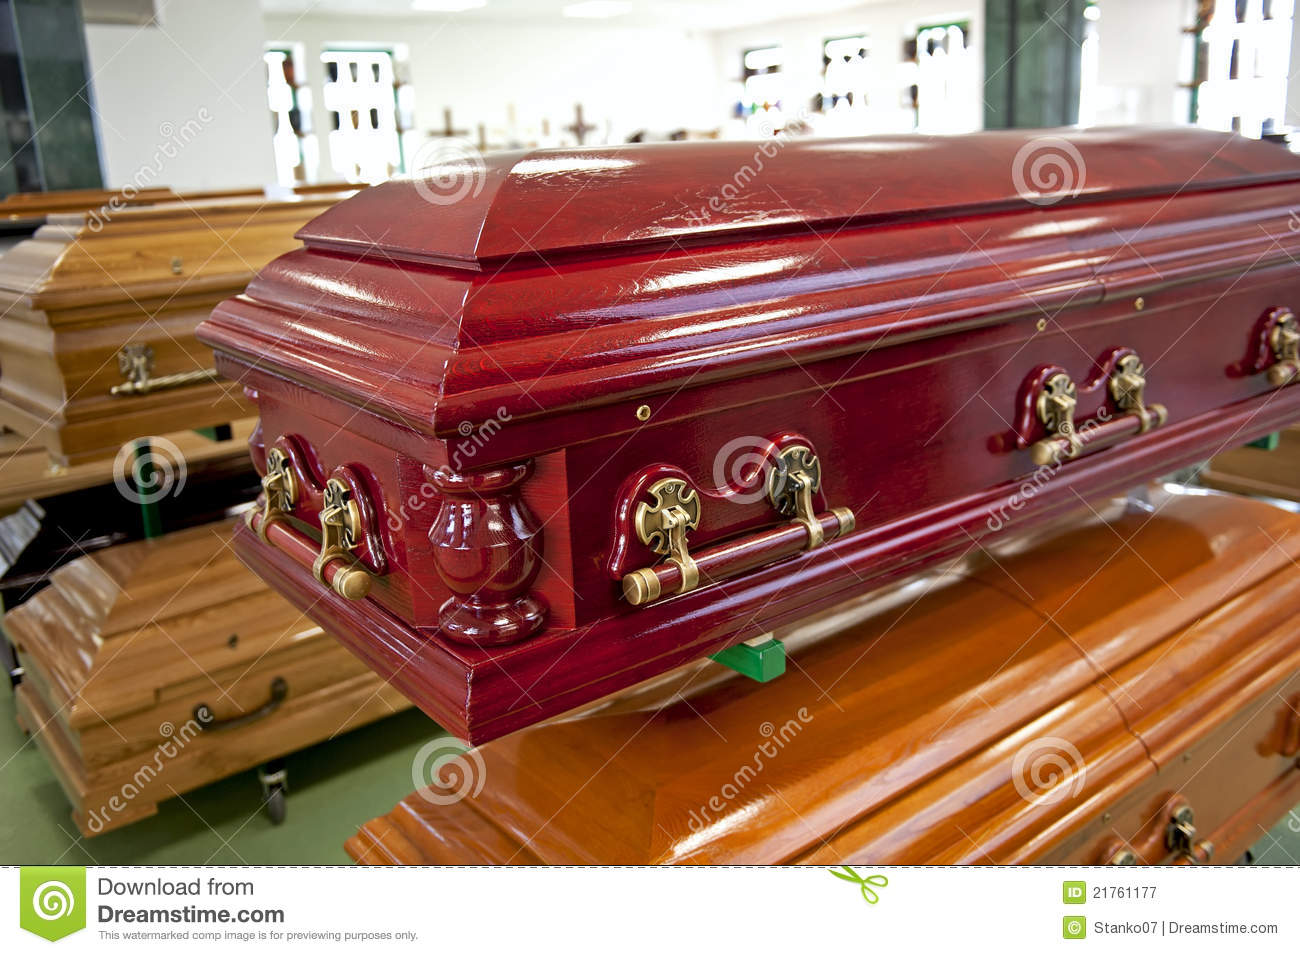 Red casket